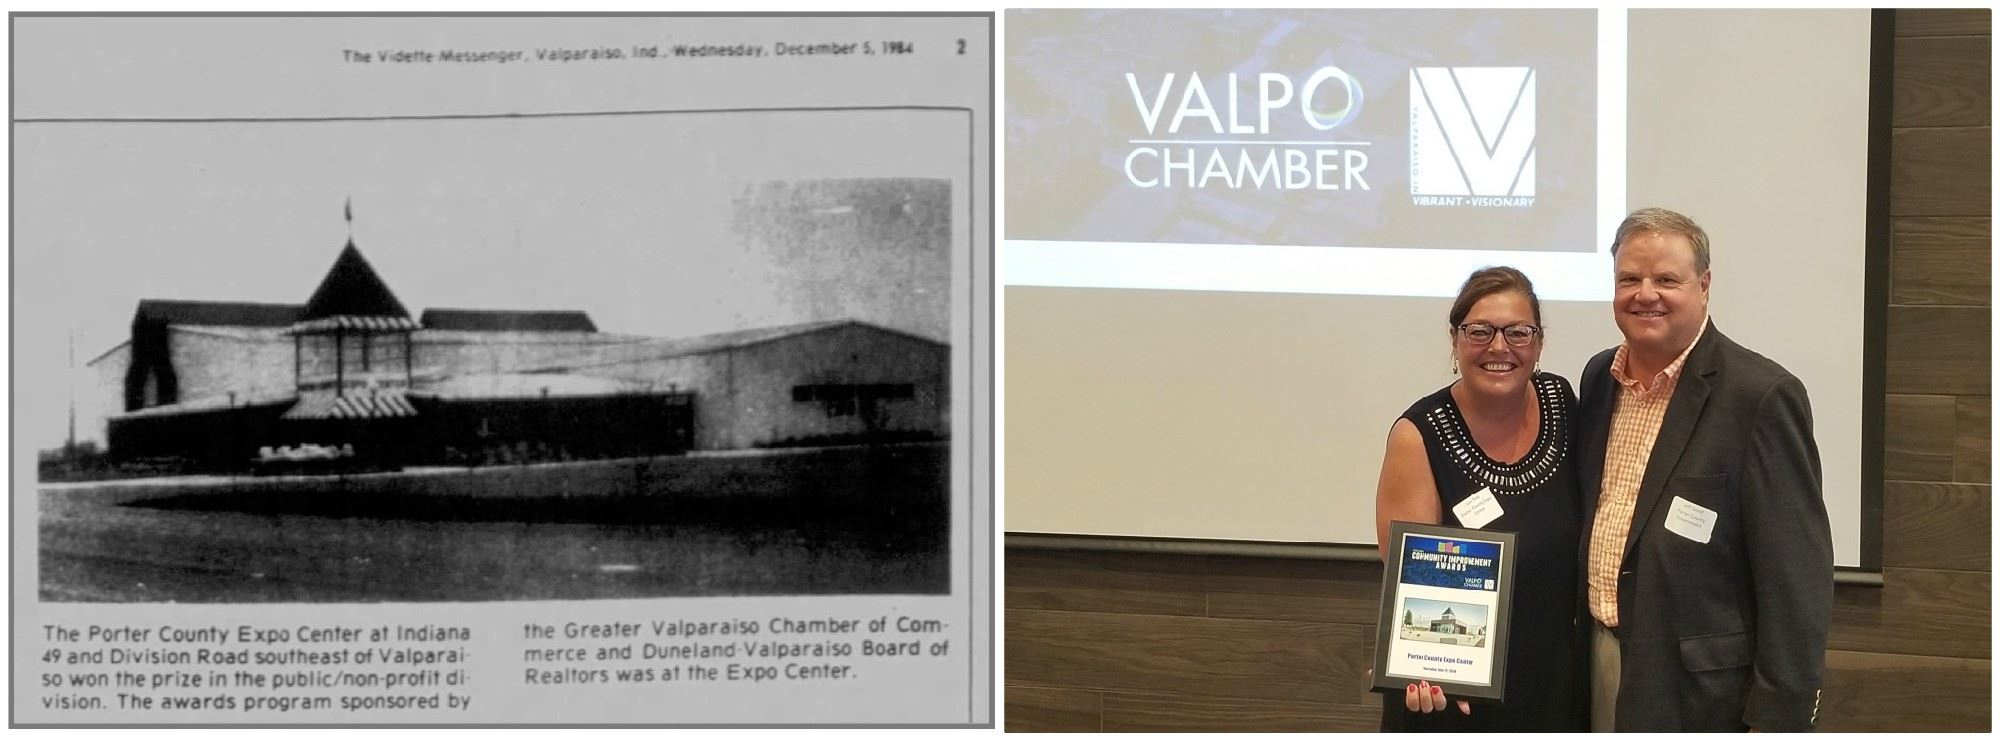 Valparaiso Community Improvement Awards From 1984 and 2019